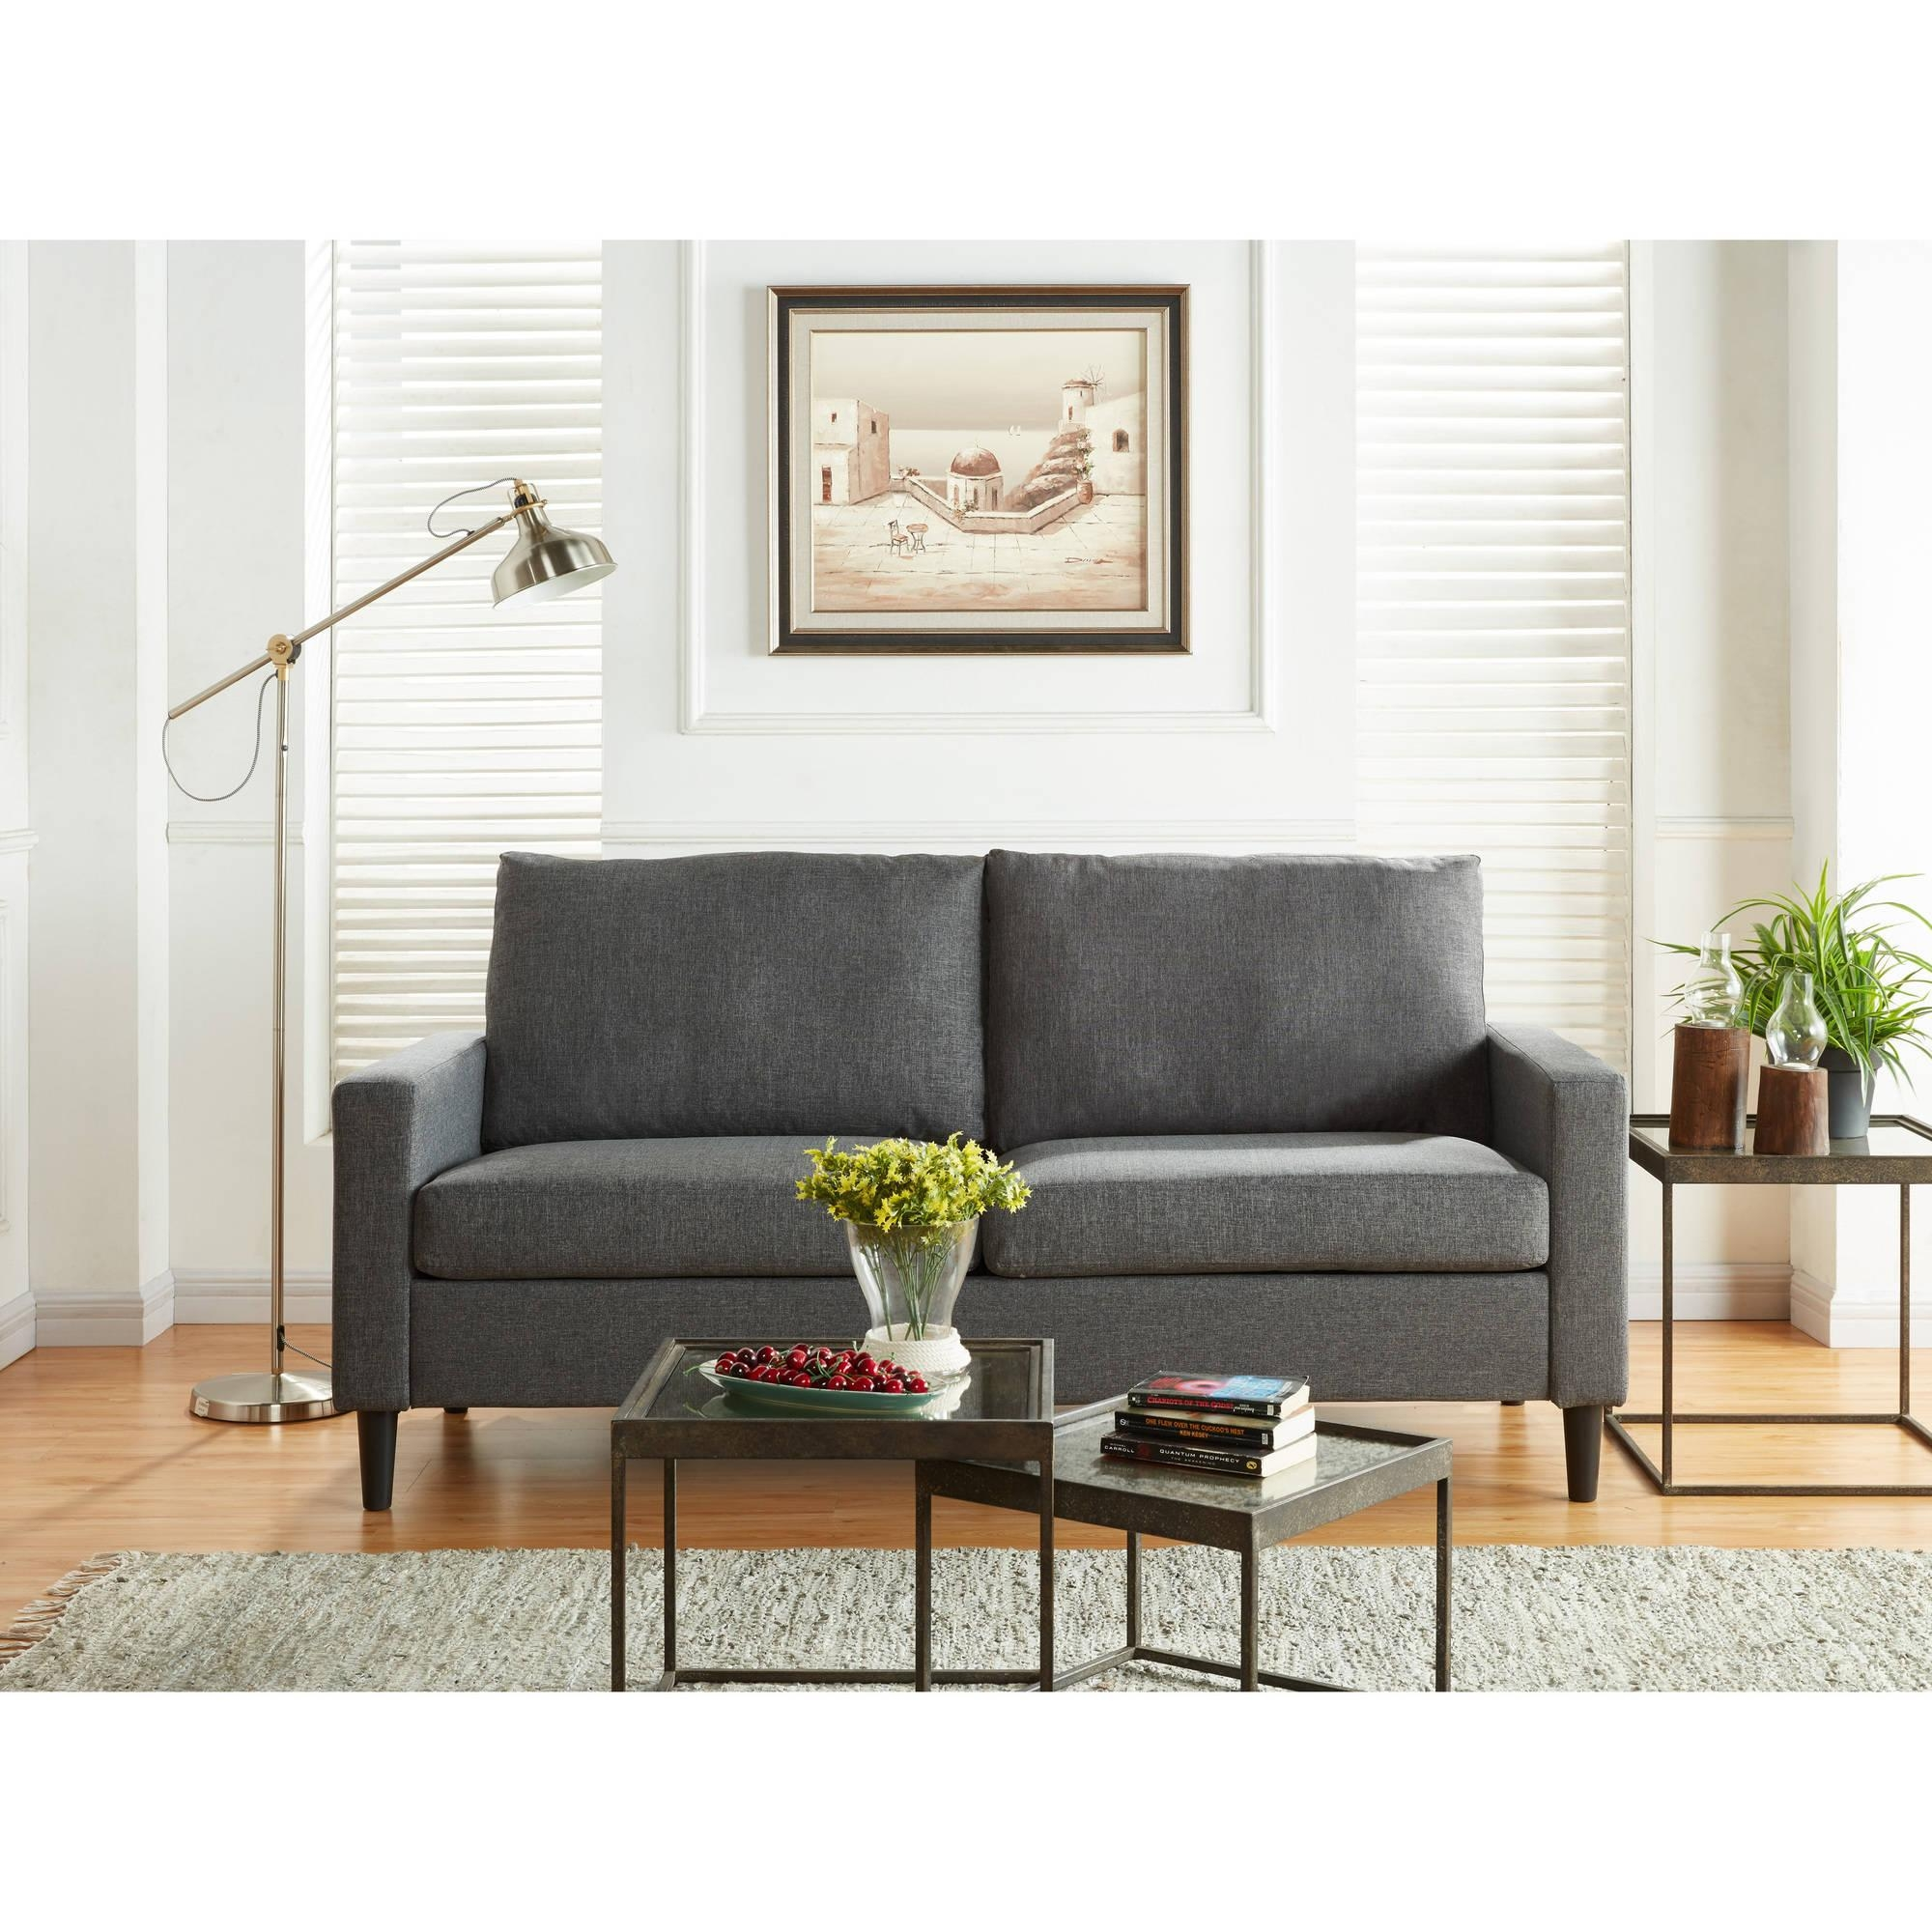 Mainstays Apartment Sofa, Multiple Colors – Walmart For Mainstays Sleeper Sofas (Image 4 of 20)